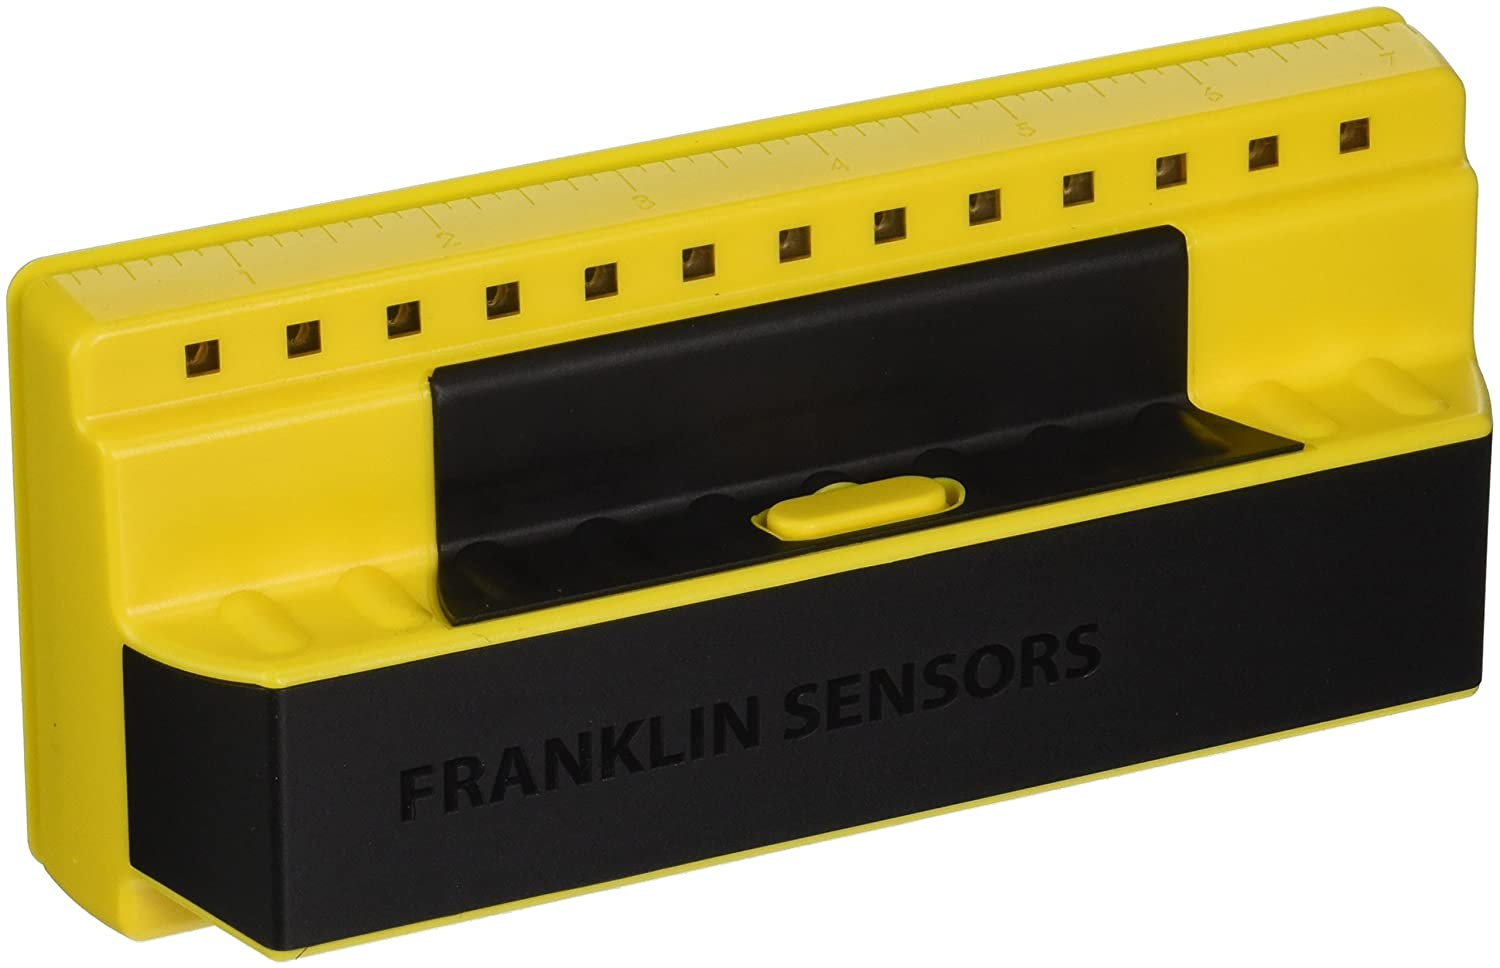 Franklin ProSensor 710 Digital